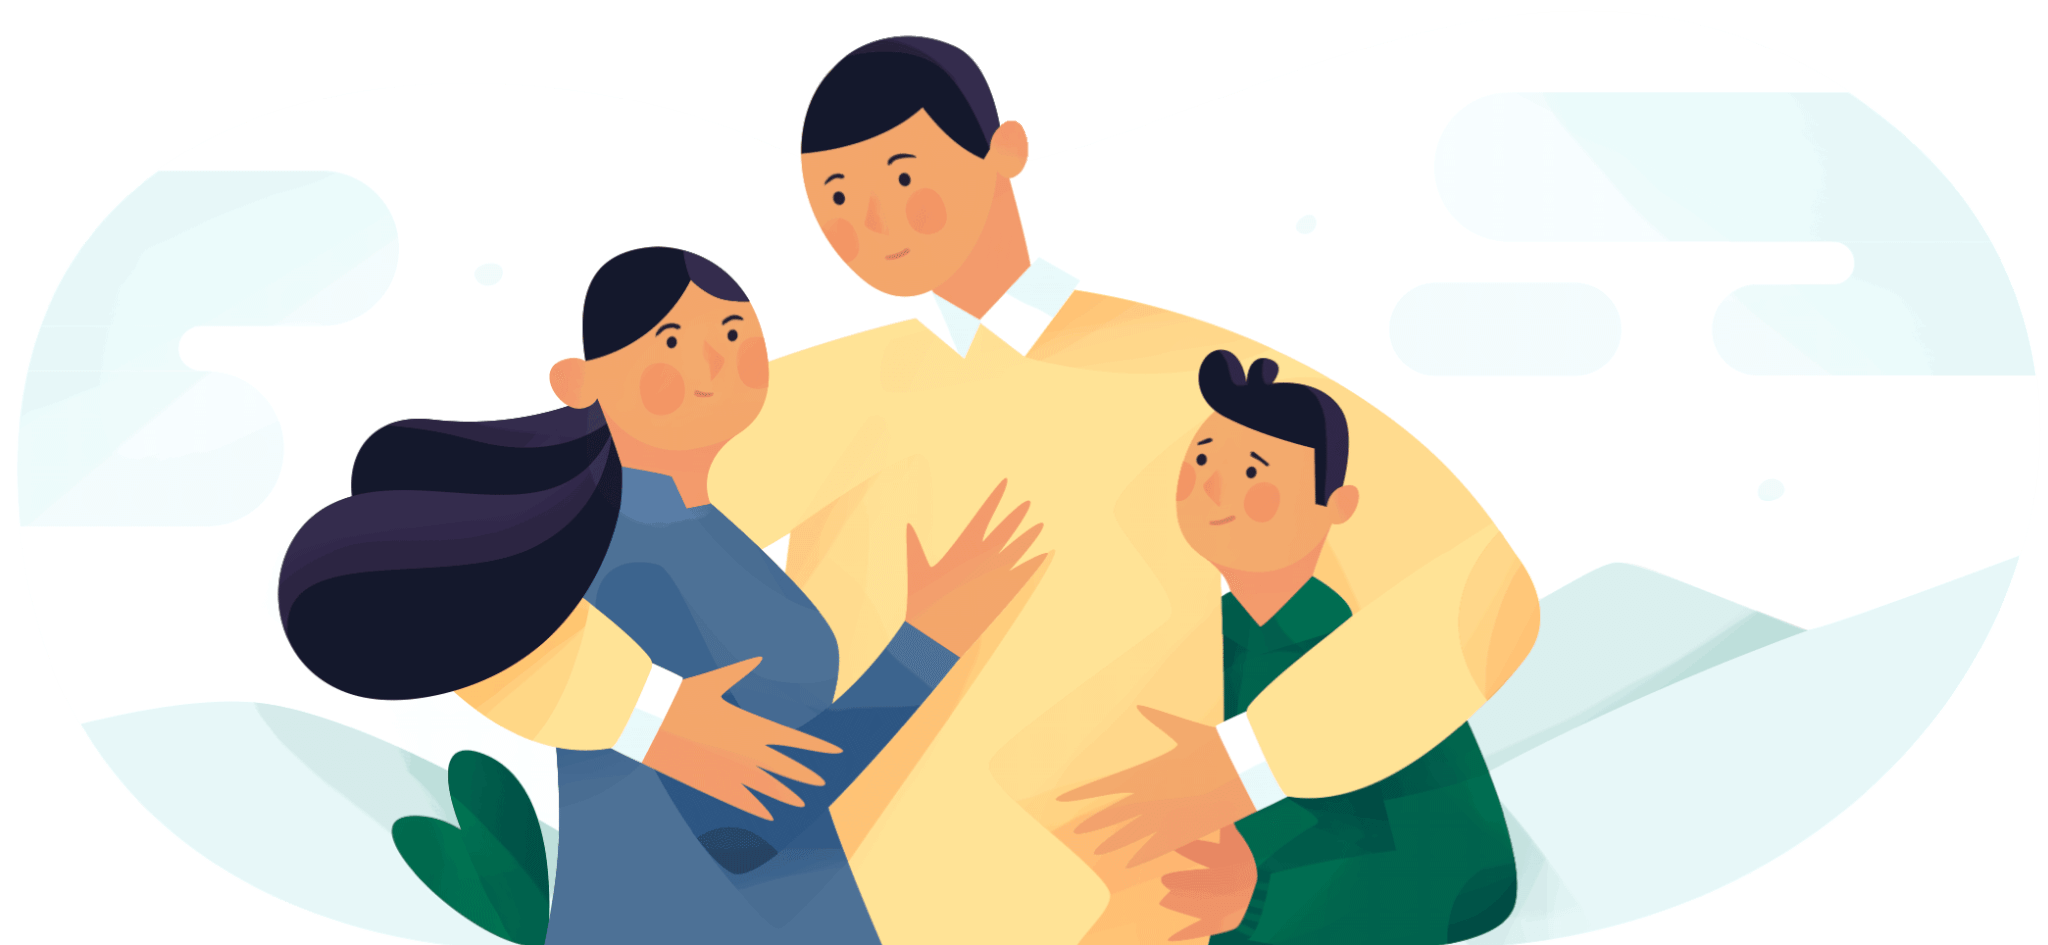 Man holding his wife and child. Illustration